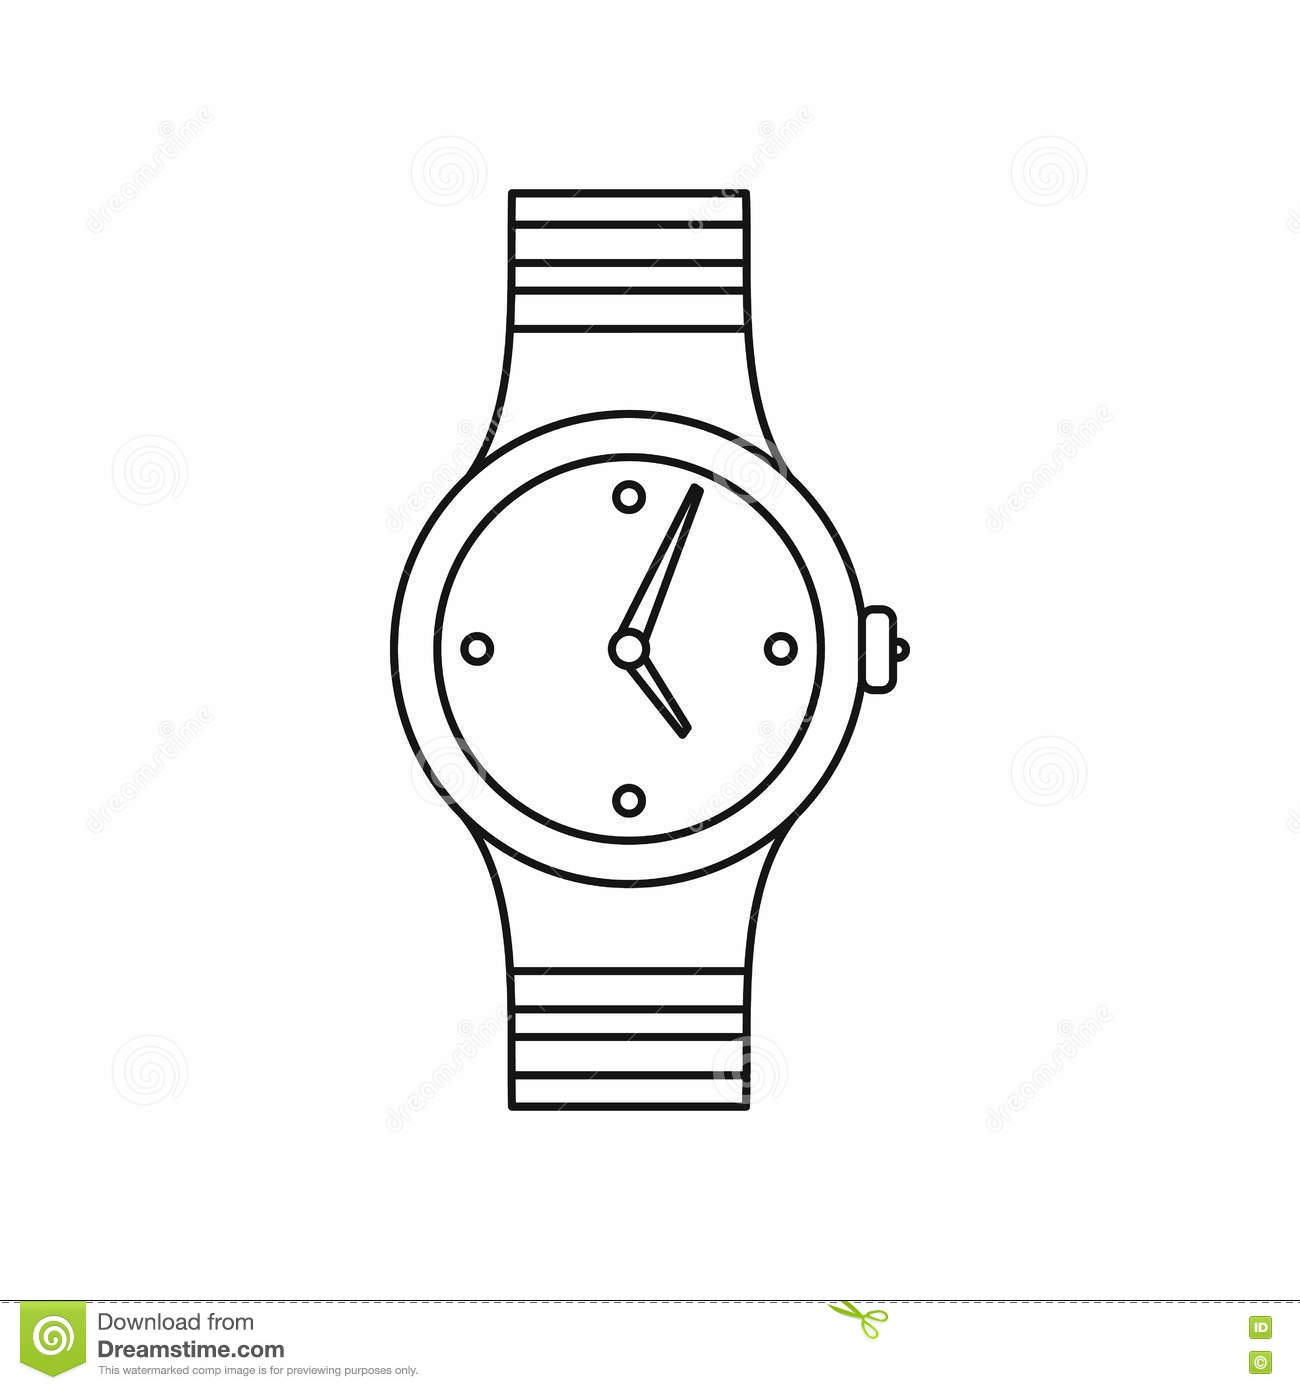 Watch icon, outline style stock vector. Image of hand